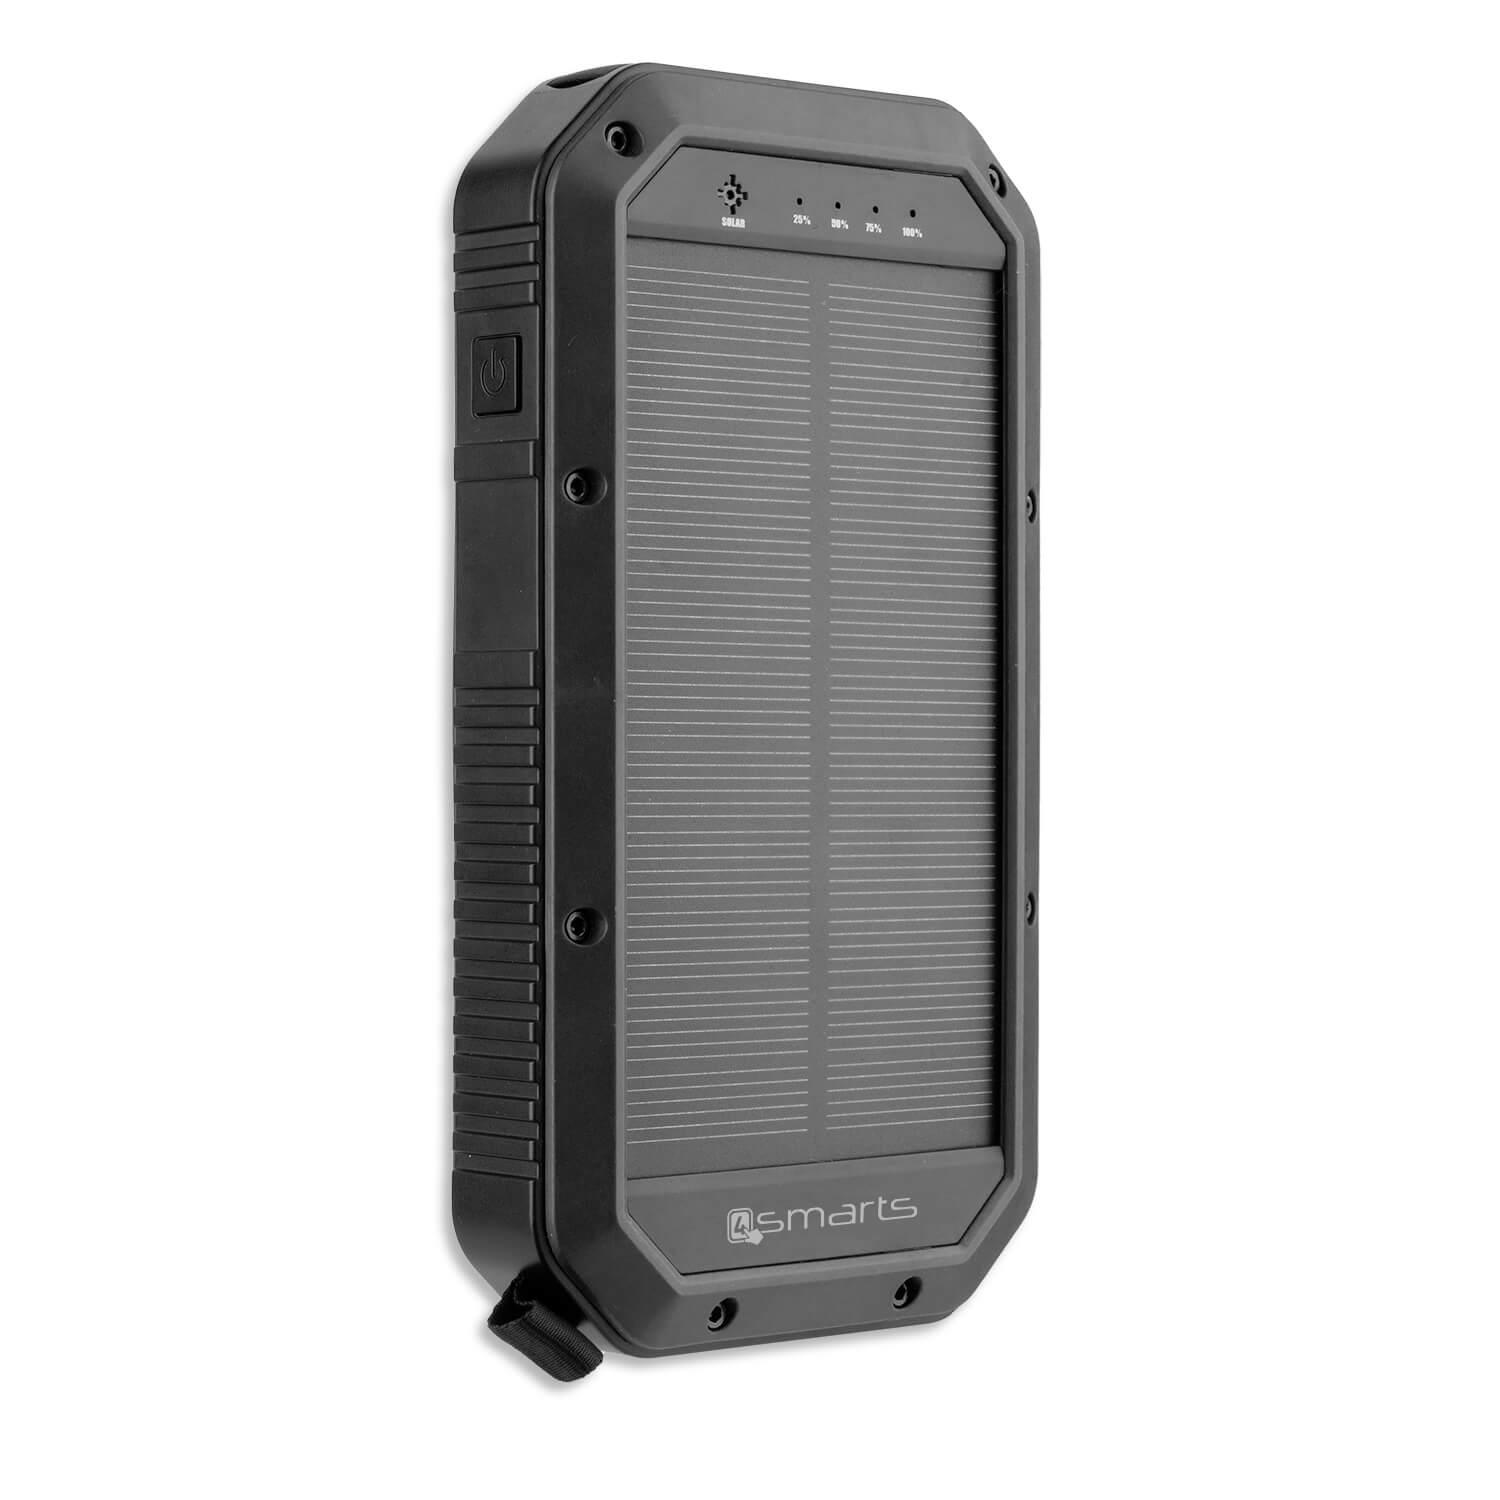 4smarts Solar Wireless Qi Power Bank TitanPack 20,000mAh (black)